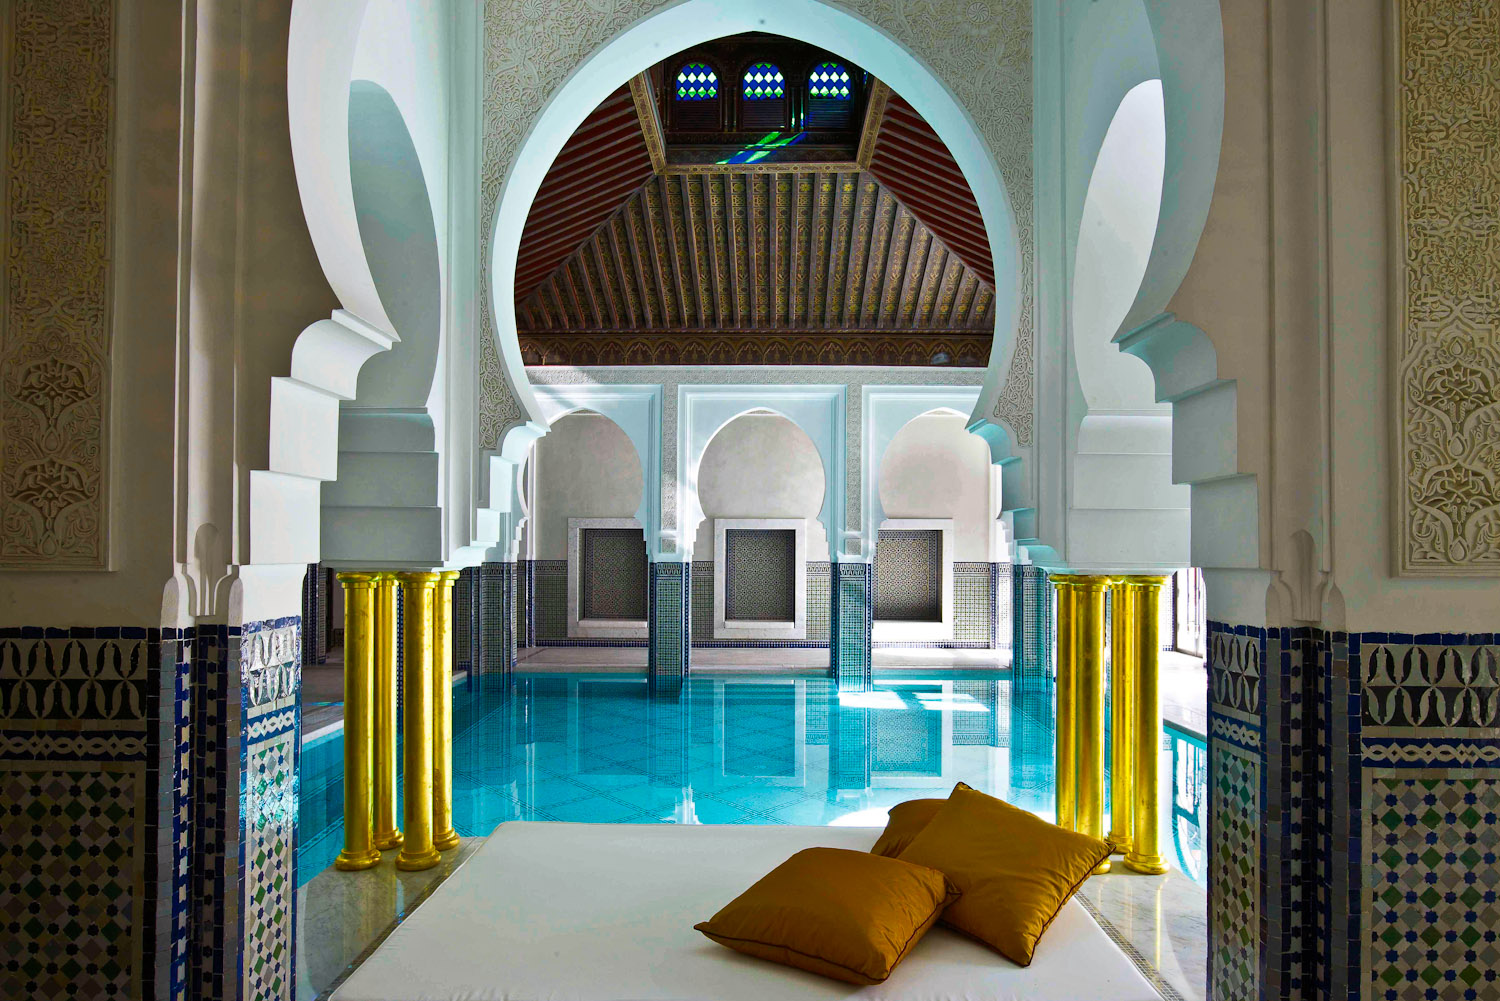 40 la mamounia marrakesh morocco international for Hotel design marrakech